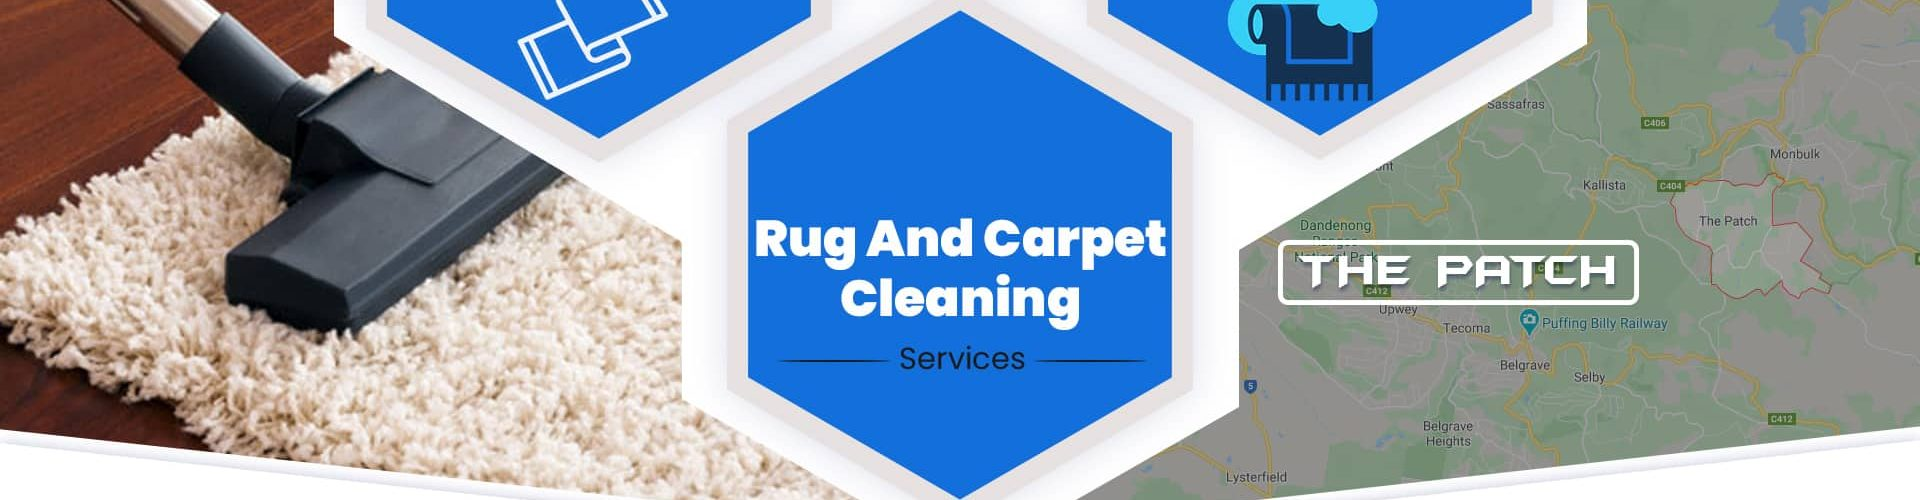 Rug and Carpet Cleaning The Patch